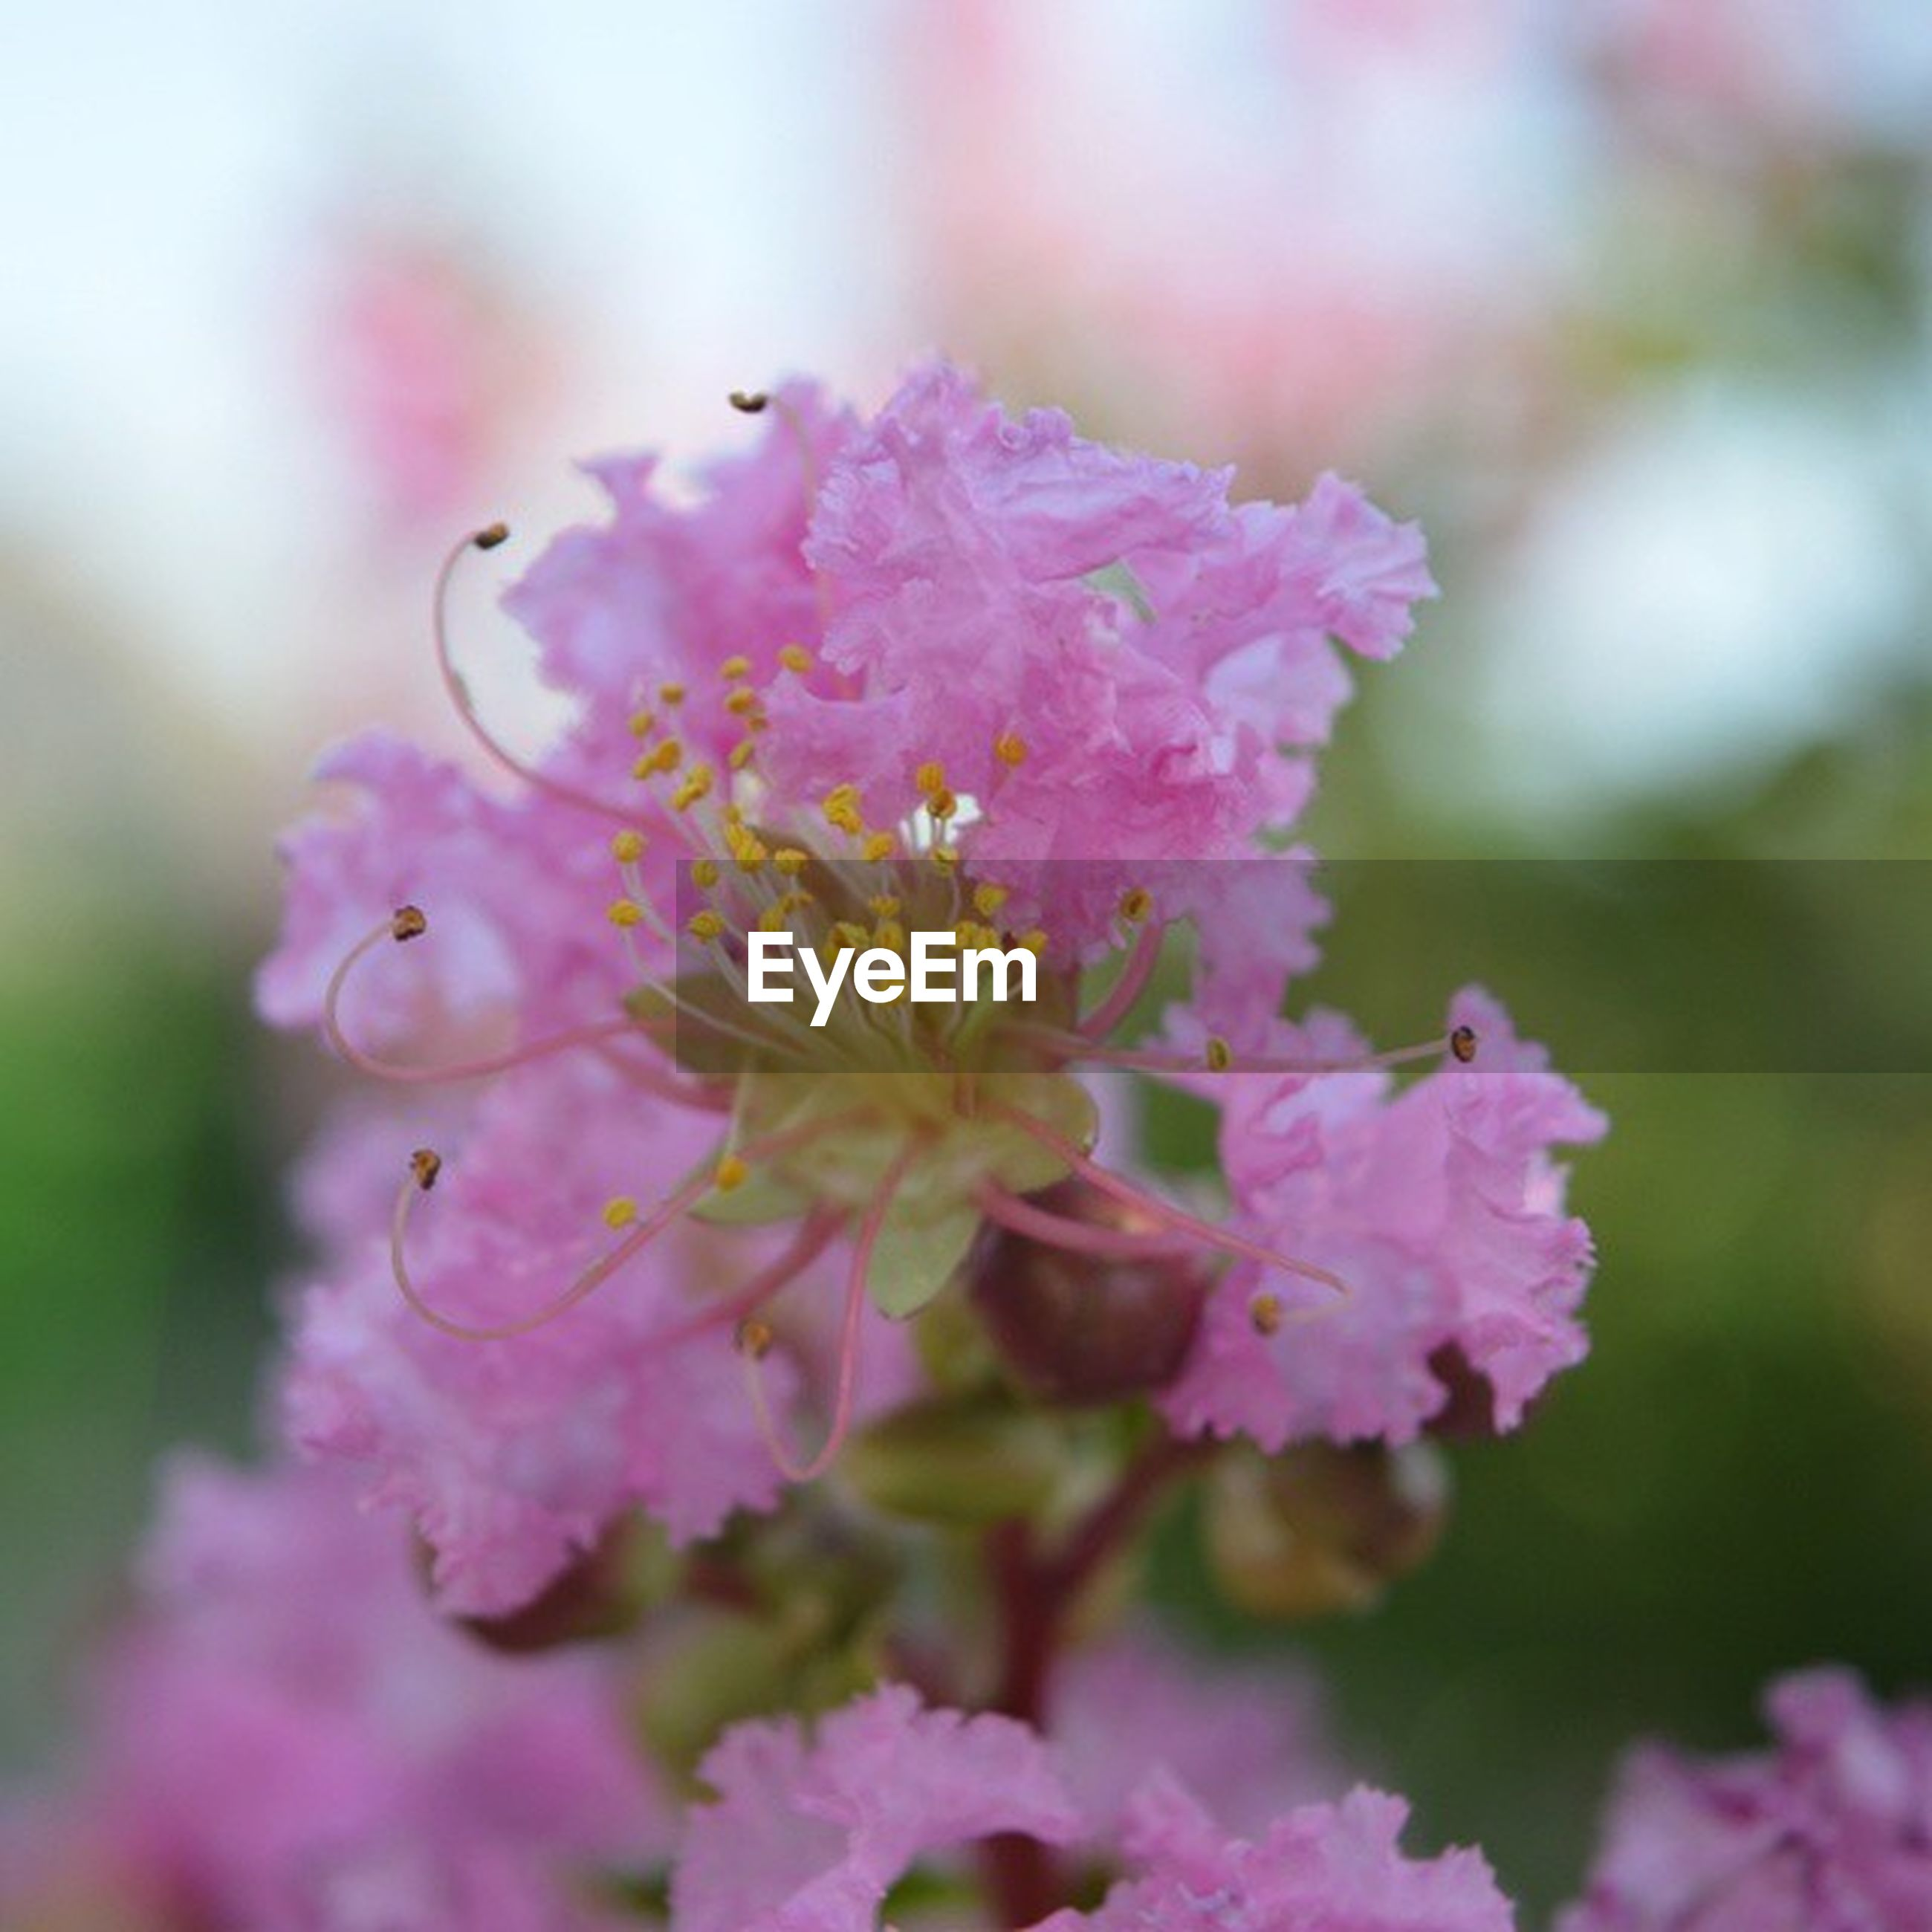 flower, freshness, fragility, pink color, petal, growth, focus on foreground, beauty in nature, close-up, flower head, nature, blooming, selective focus, plant, in bloom, blossom, bud, park - man made space, day, pink